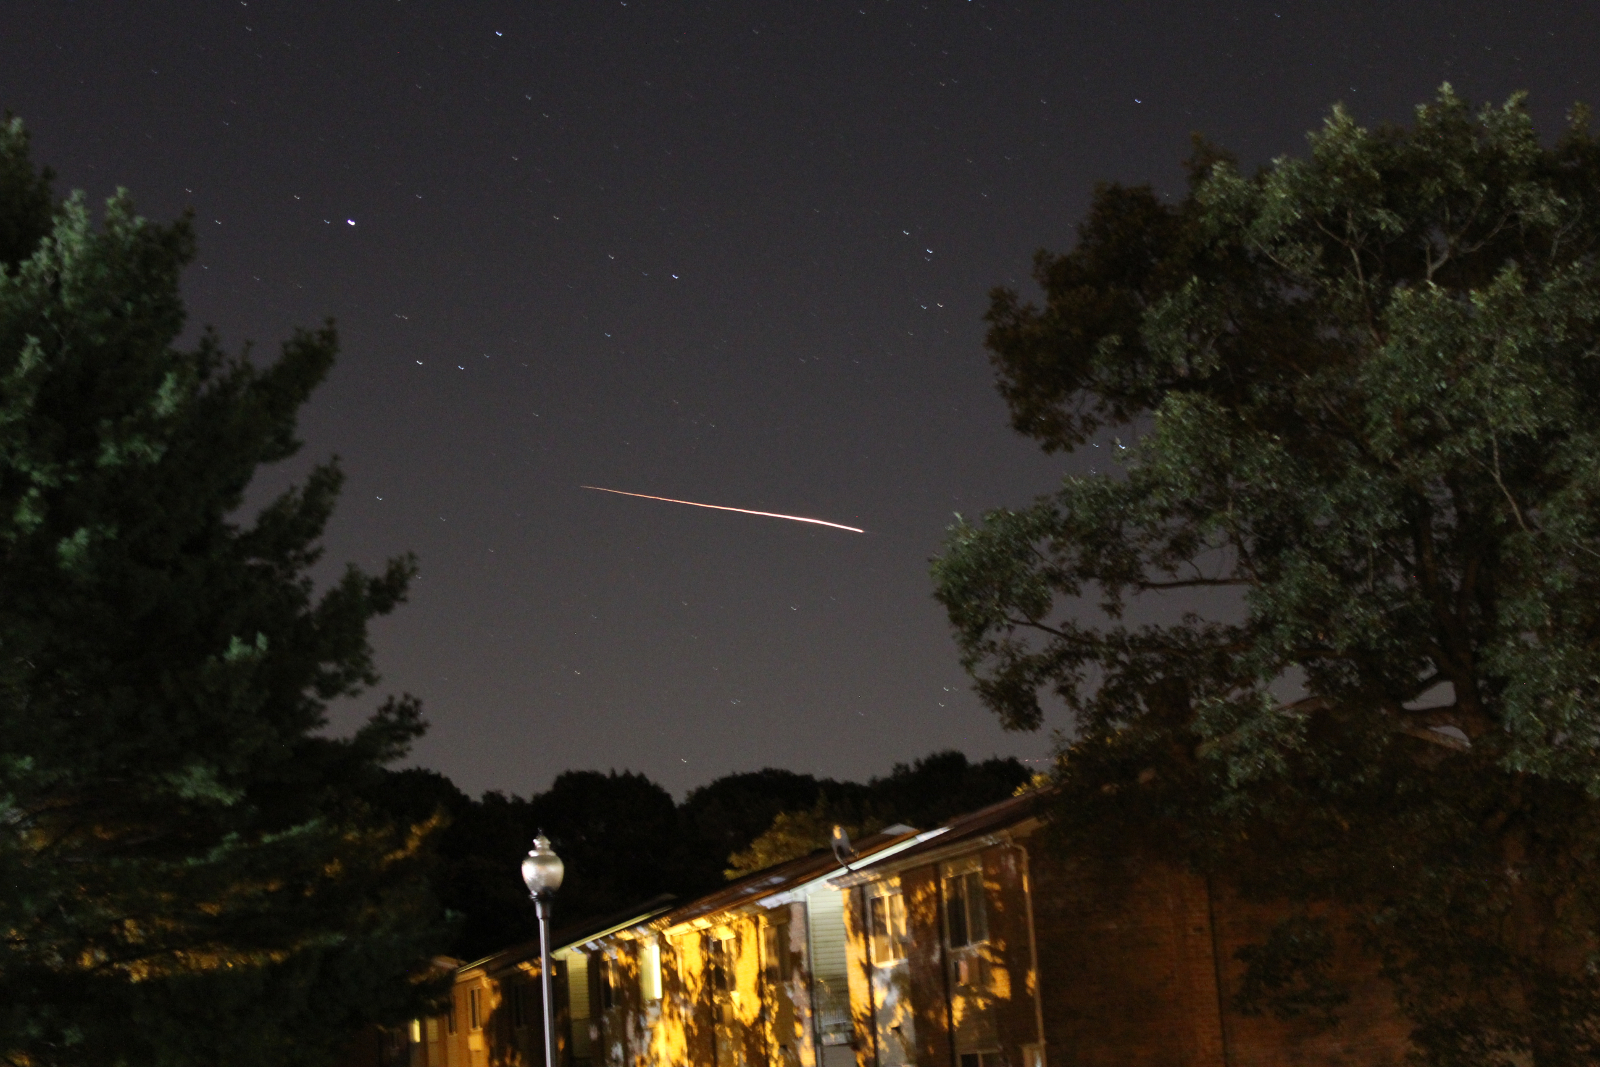 LADEE Moon Probe Launch Seen from New Jersey